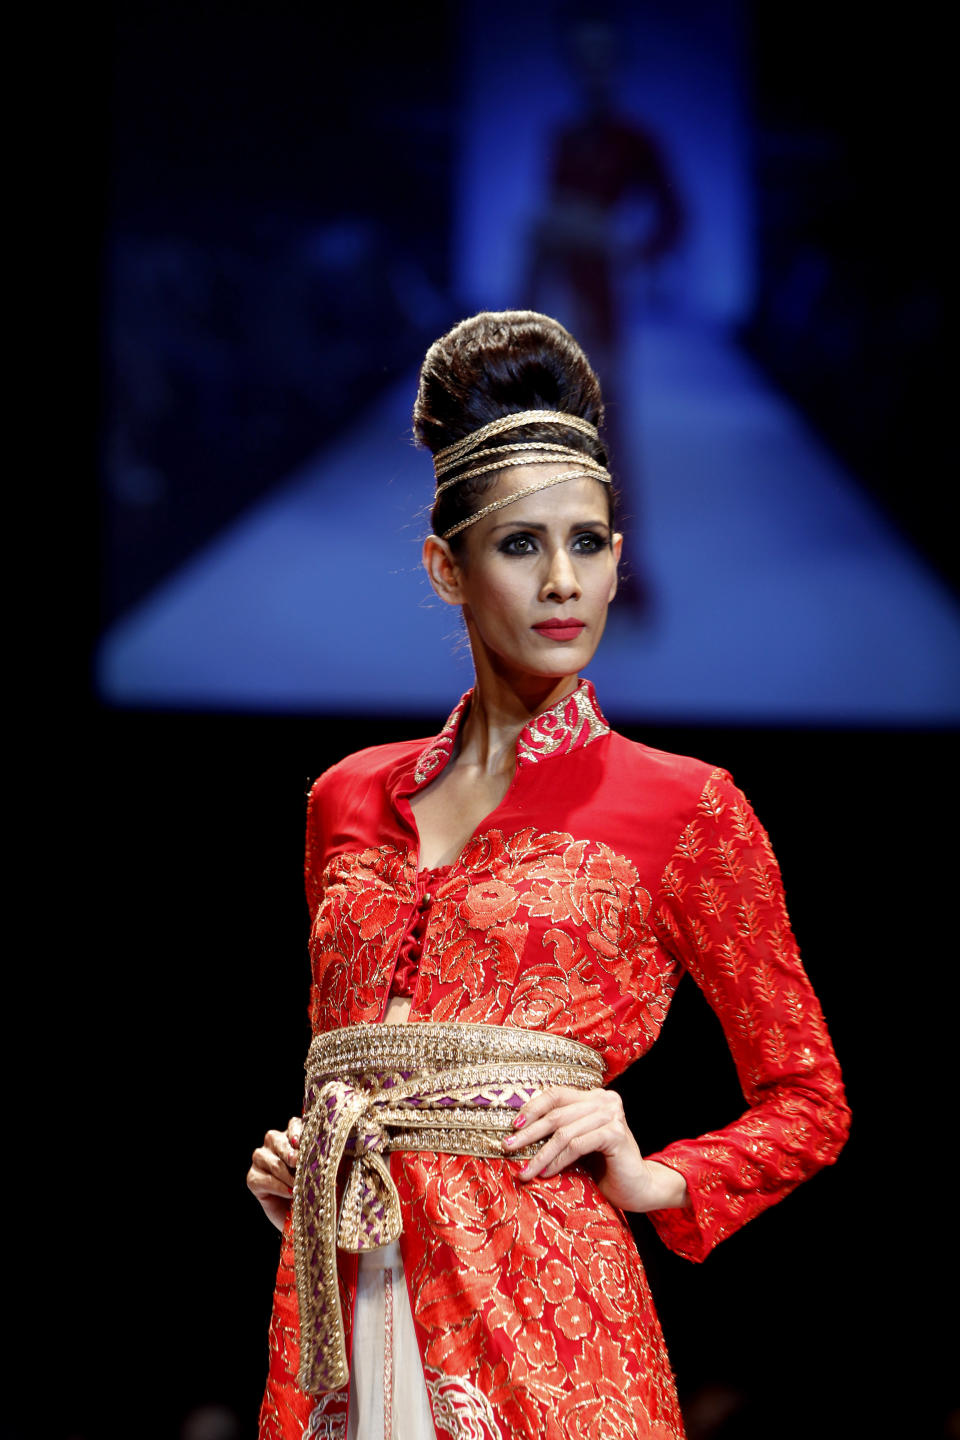 An Indian model displays a creation by Krishna Mehta during the Lakme Fashion Week in Mumbai, India, Sunday, Aug. 5, 2012. (AP Photo/Rafiq Maqbool)